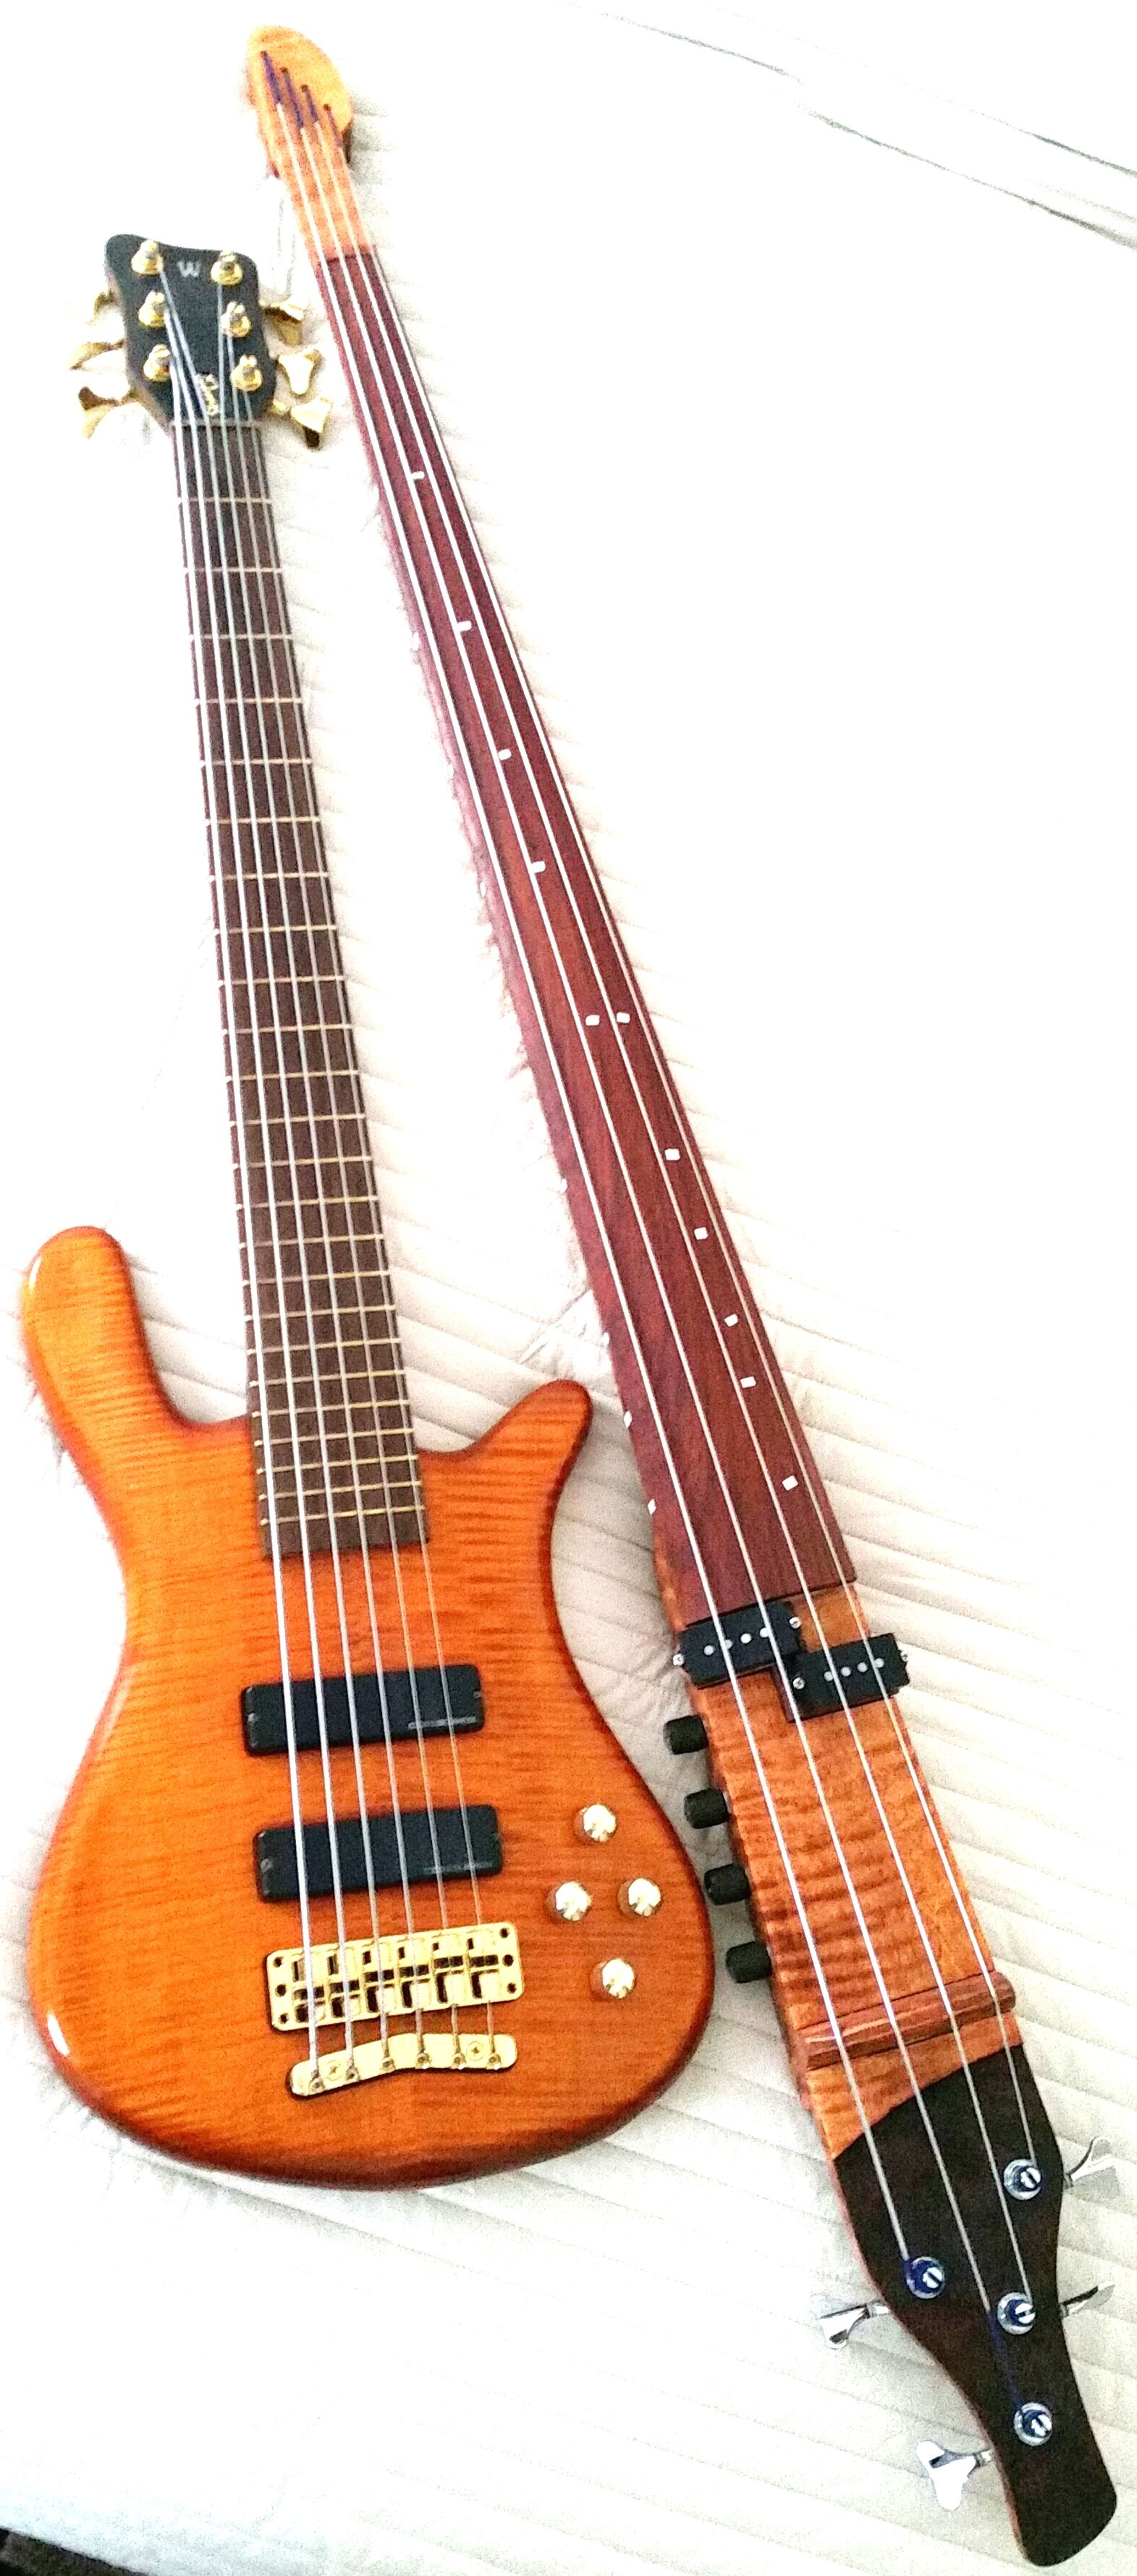 My Basses: My Warwick 6 and My custom Electric Upright